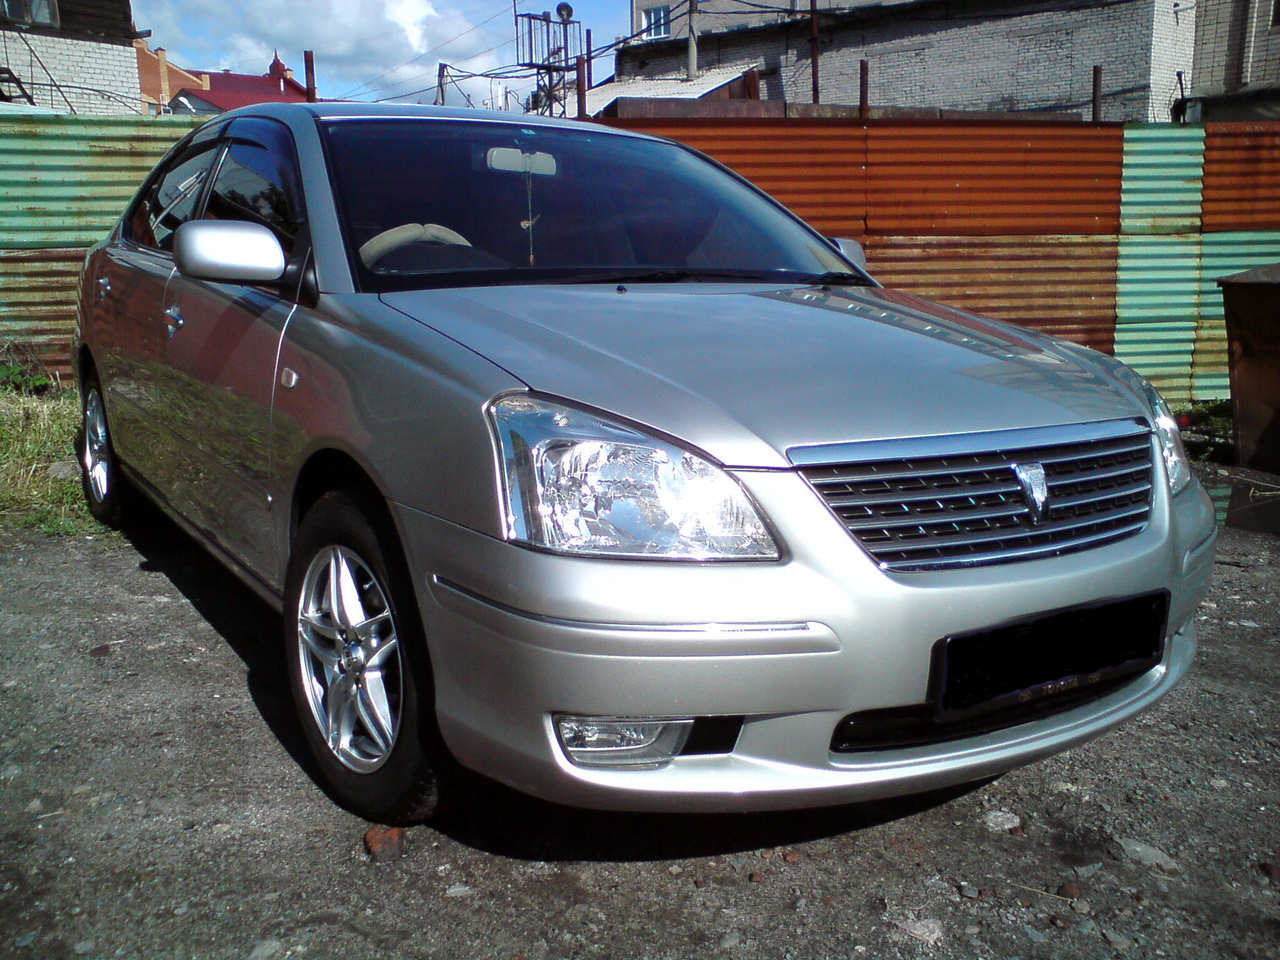 2004 toyota premio photos 1 8 gasoline ff automatic for sale